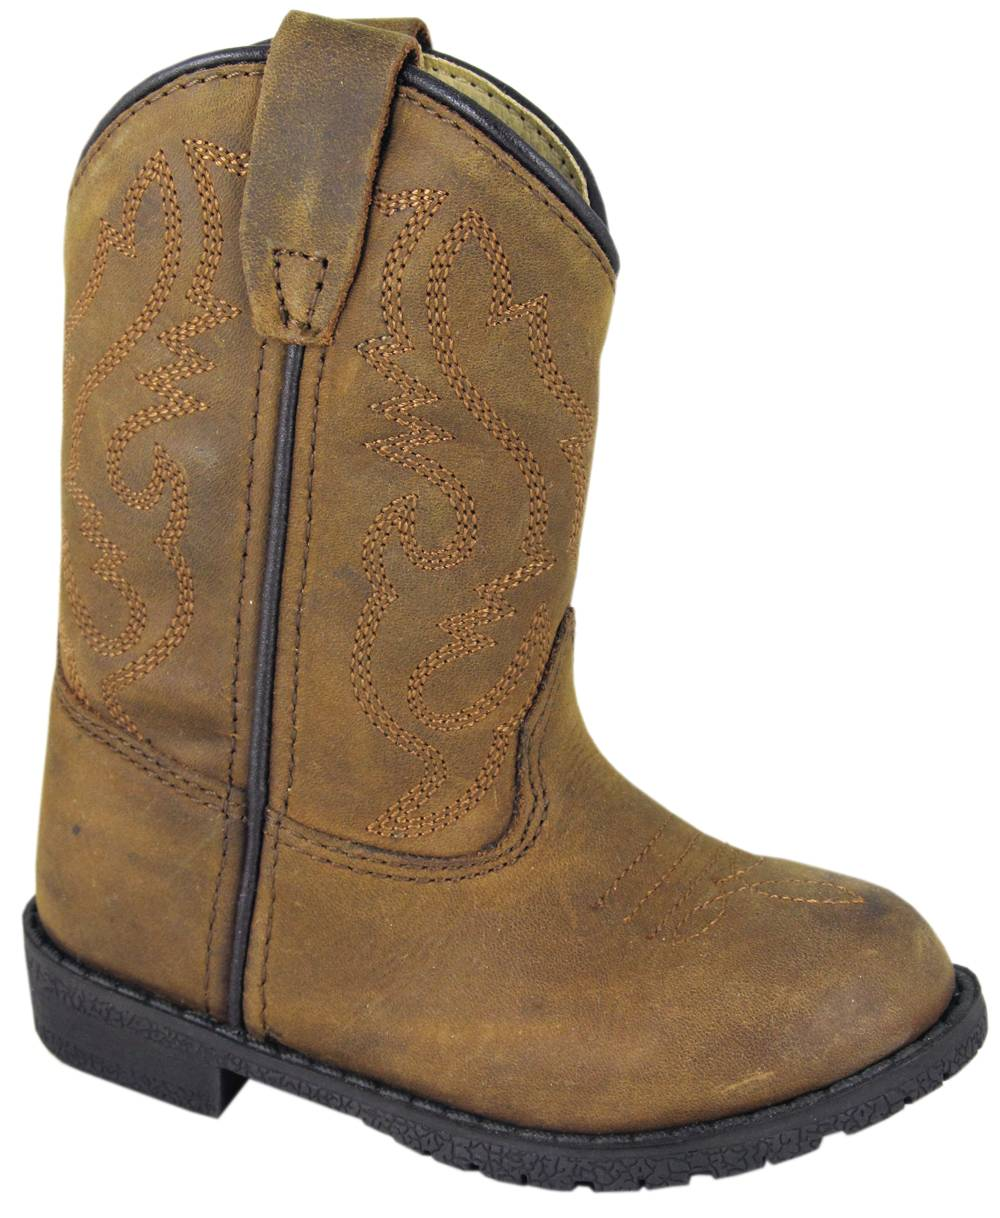 Smoky Mountain Toddler's Hopalong Leather Boots